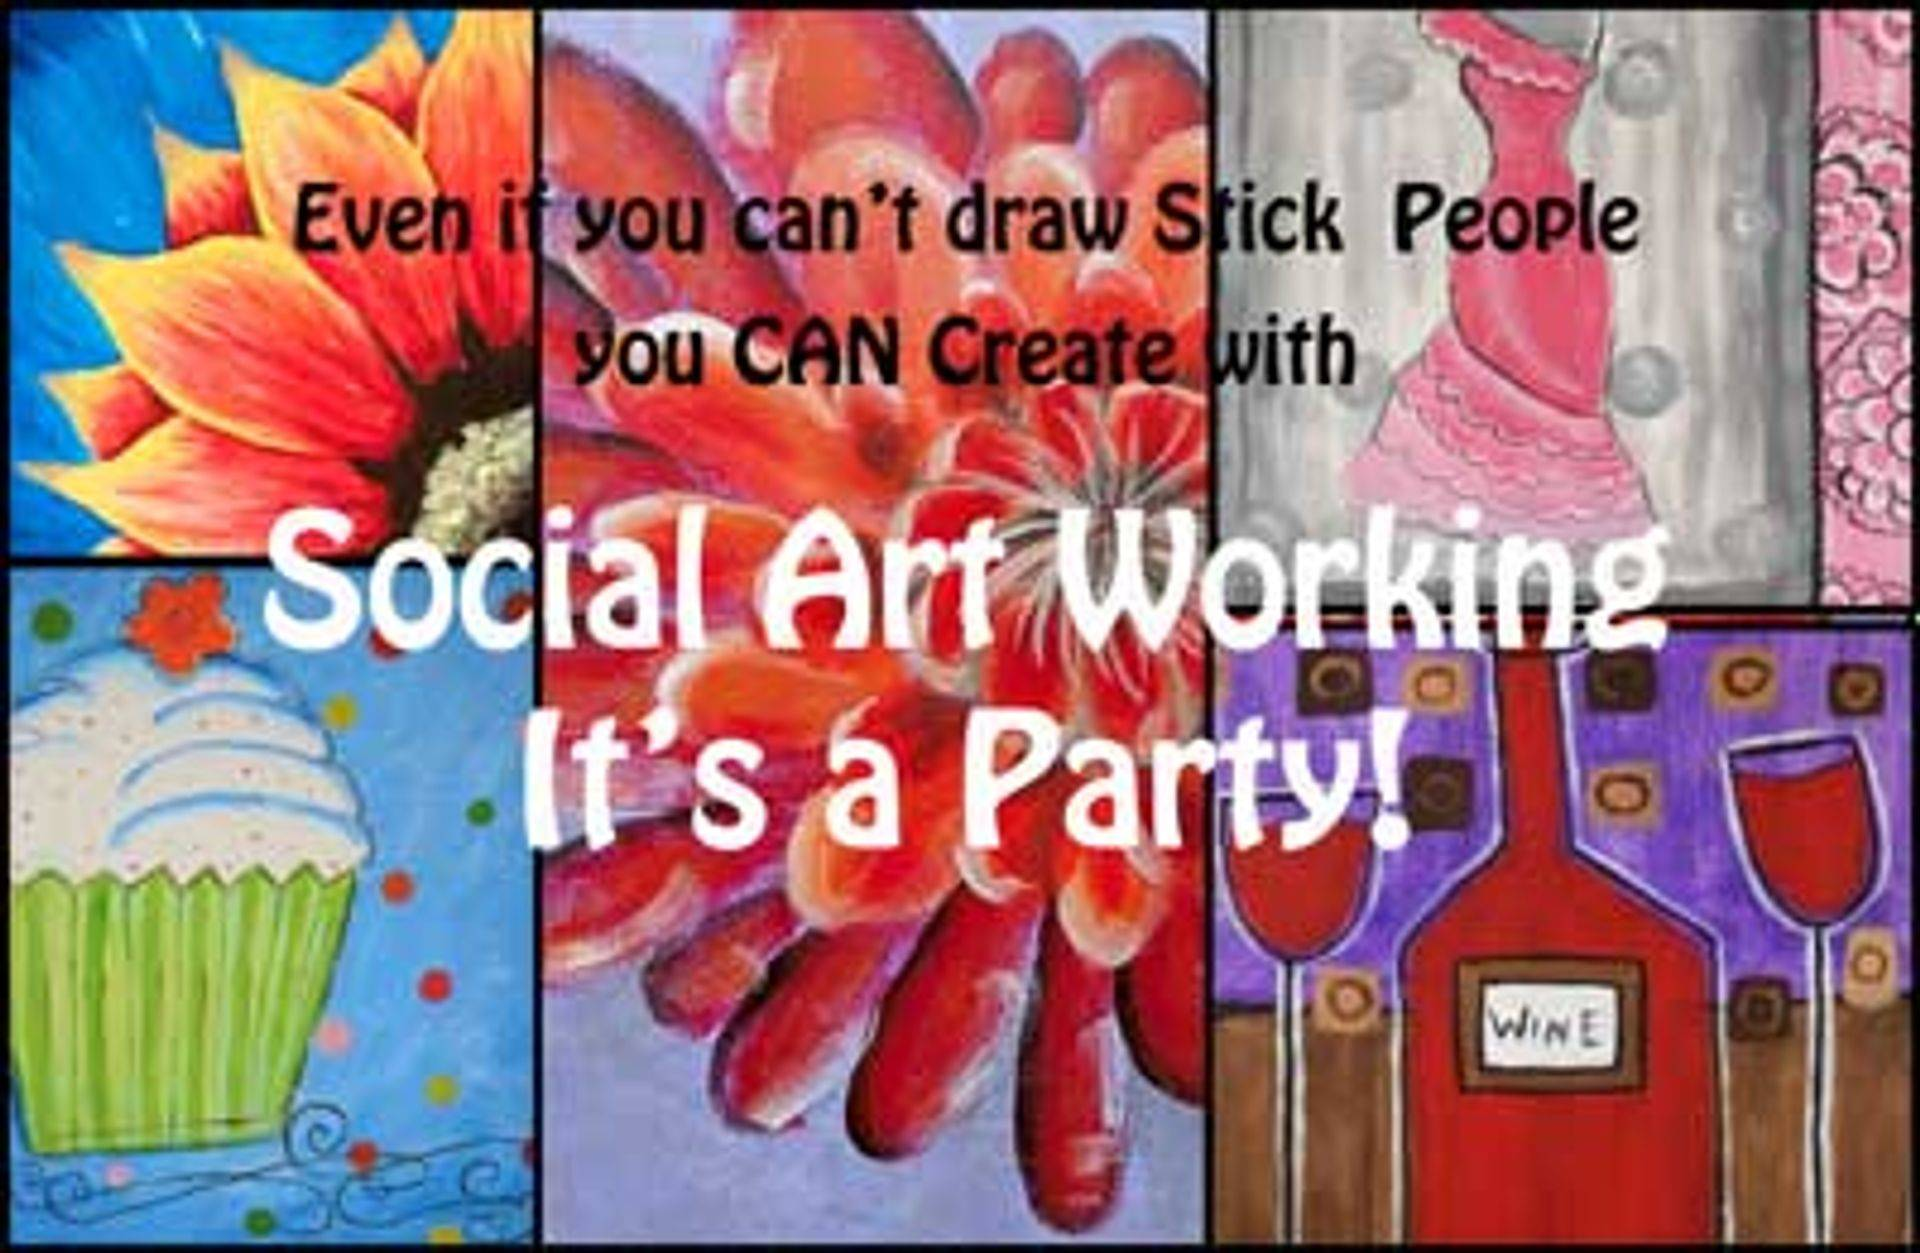 Social ArtWorking, Canvases to Choose from